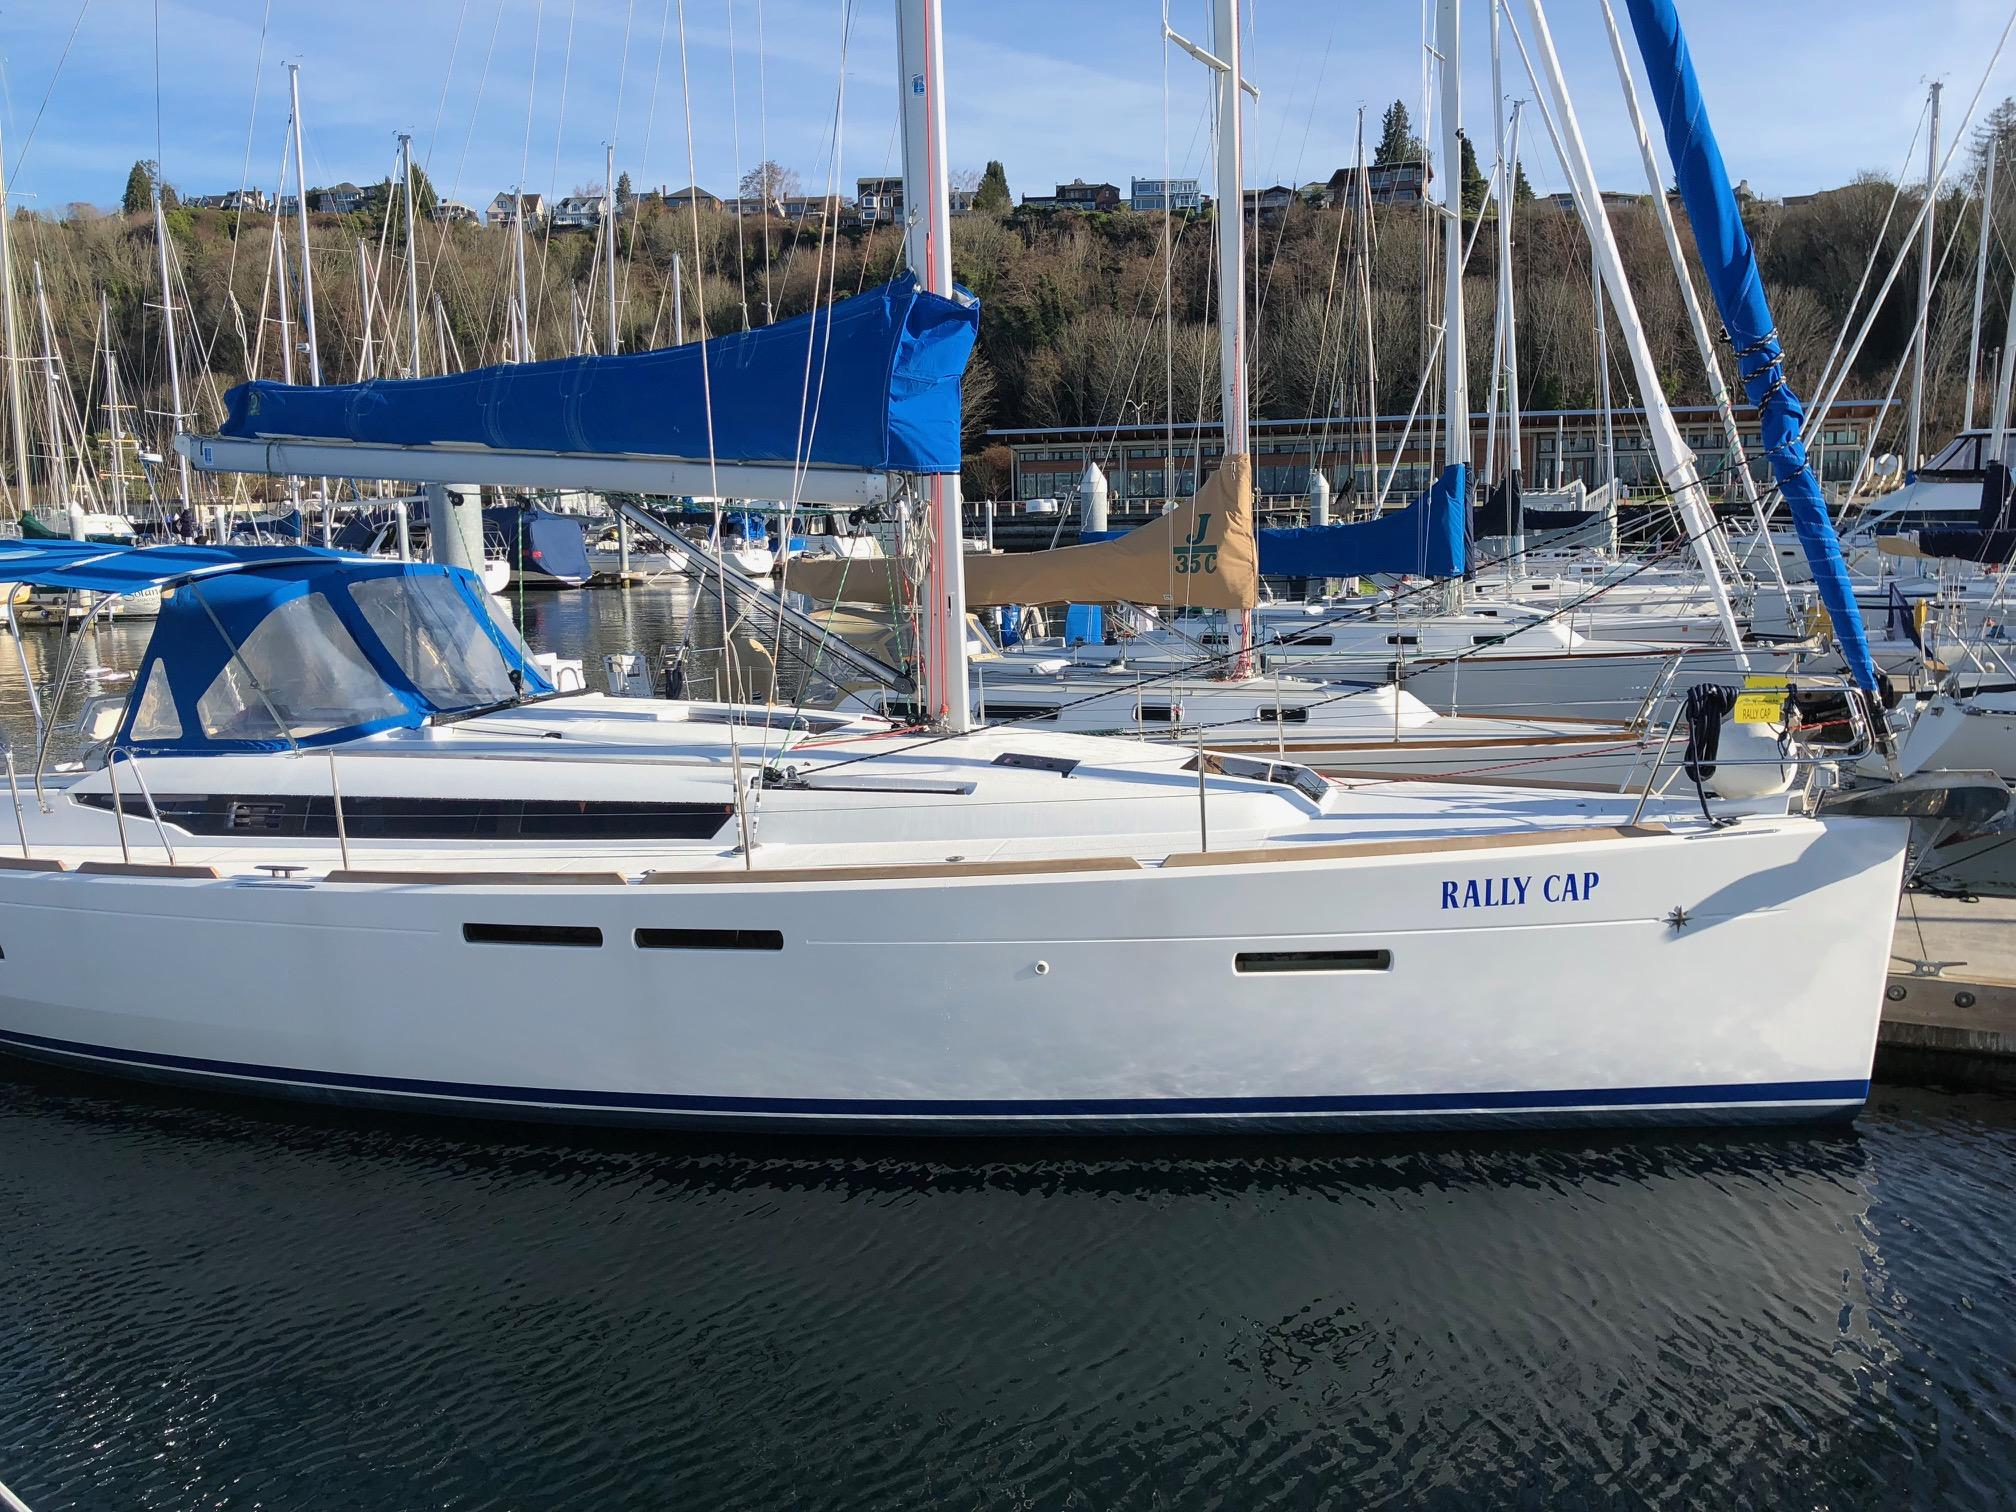 Pacific Northwest Boat Rentals & Charters with Windworks Sailing